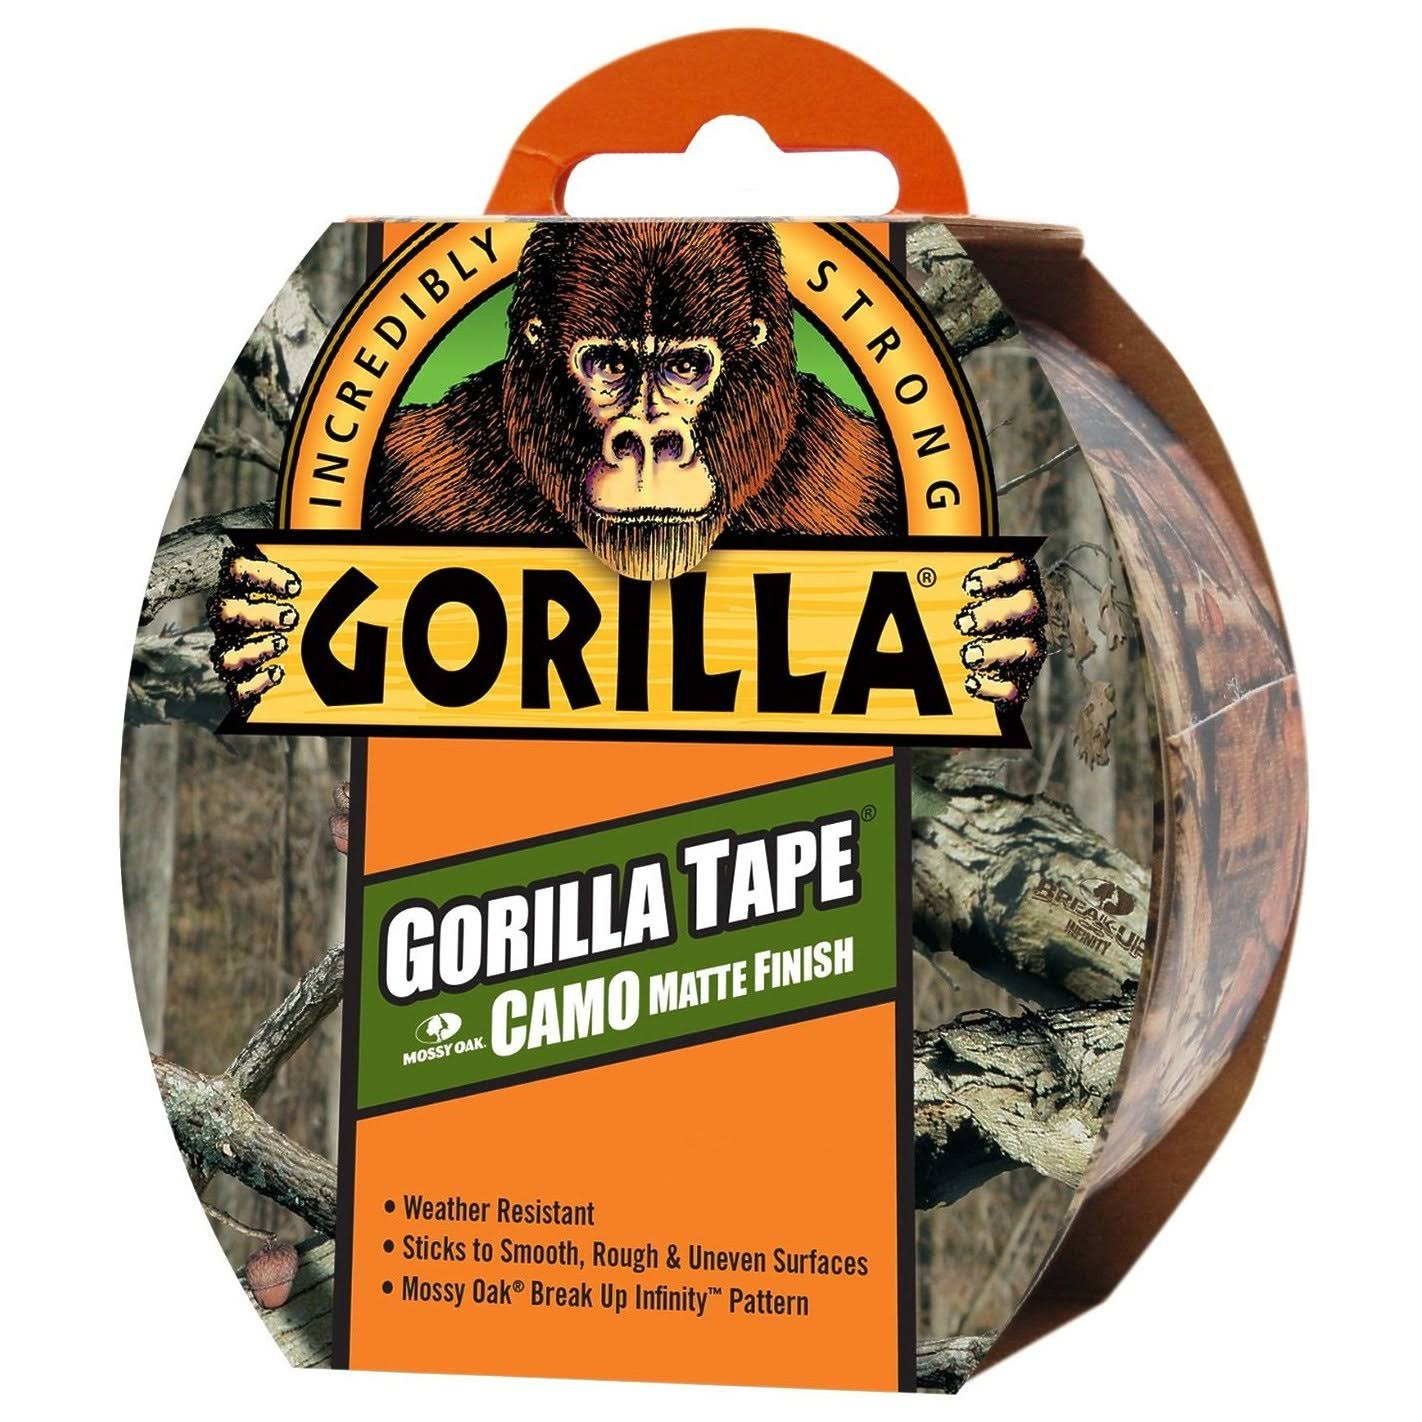 Gorilla Tape Camouflage Matte Finish